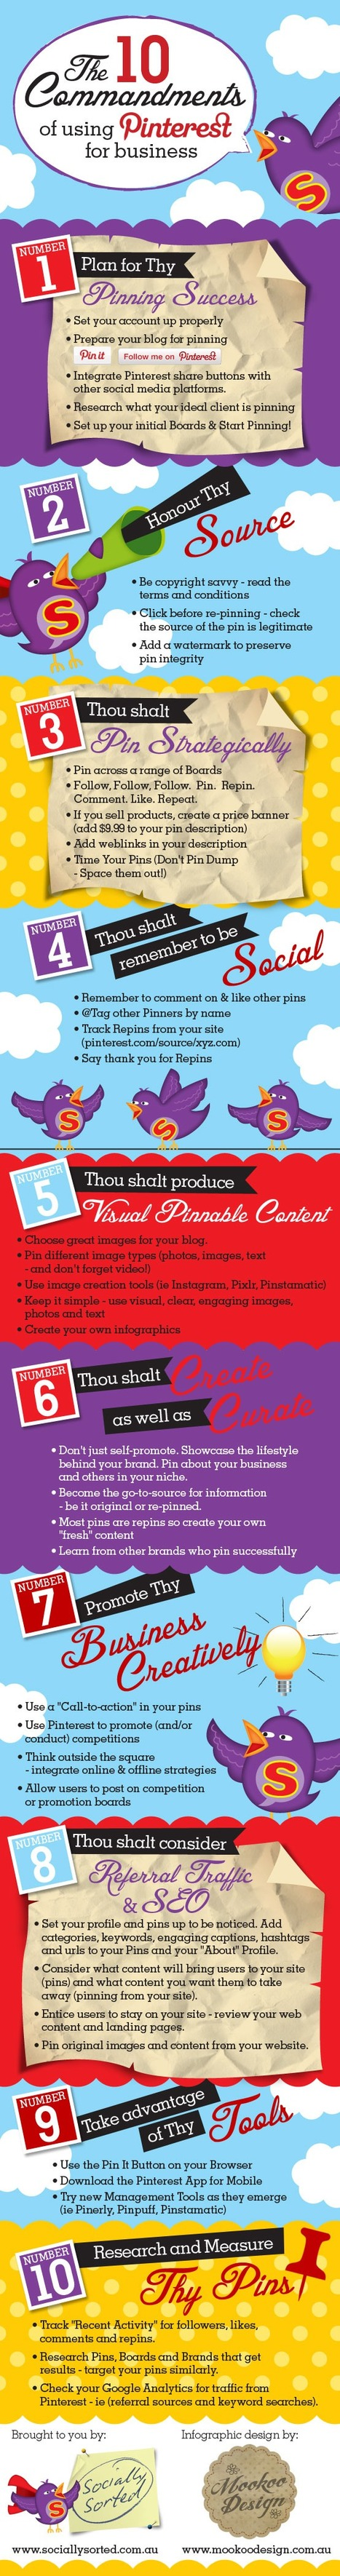 The 10 Commandments Of Using Pinterest For Business [Infographic] - Bit Rebels | MarketingHits | Scoop.it